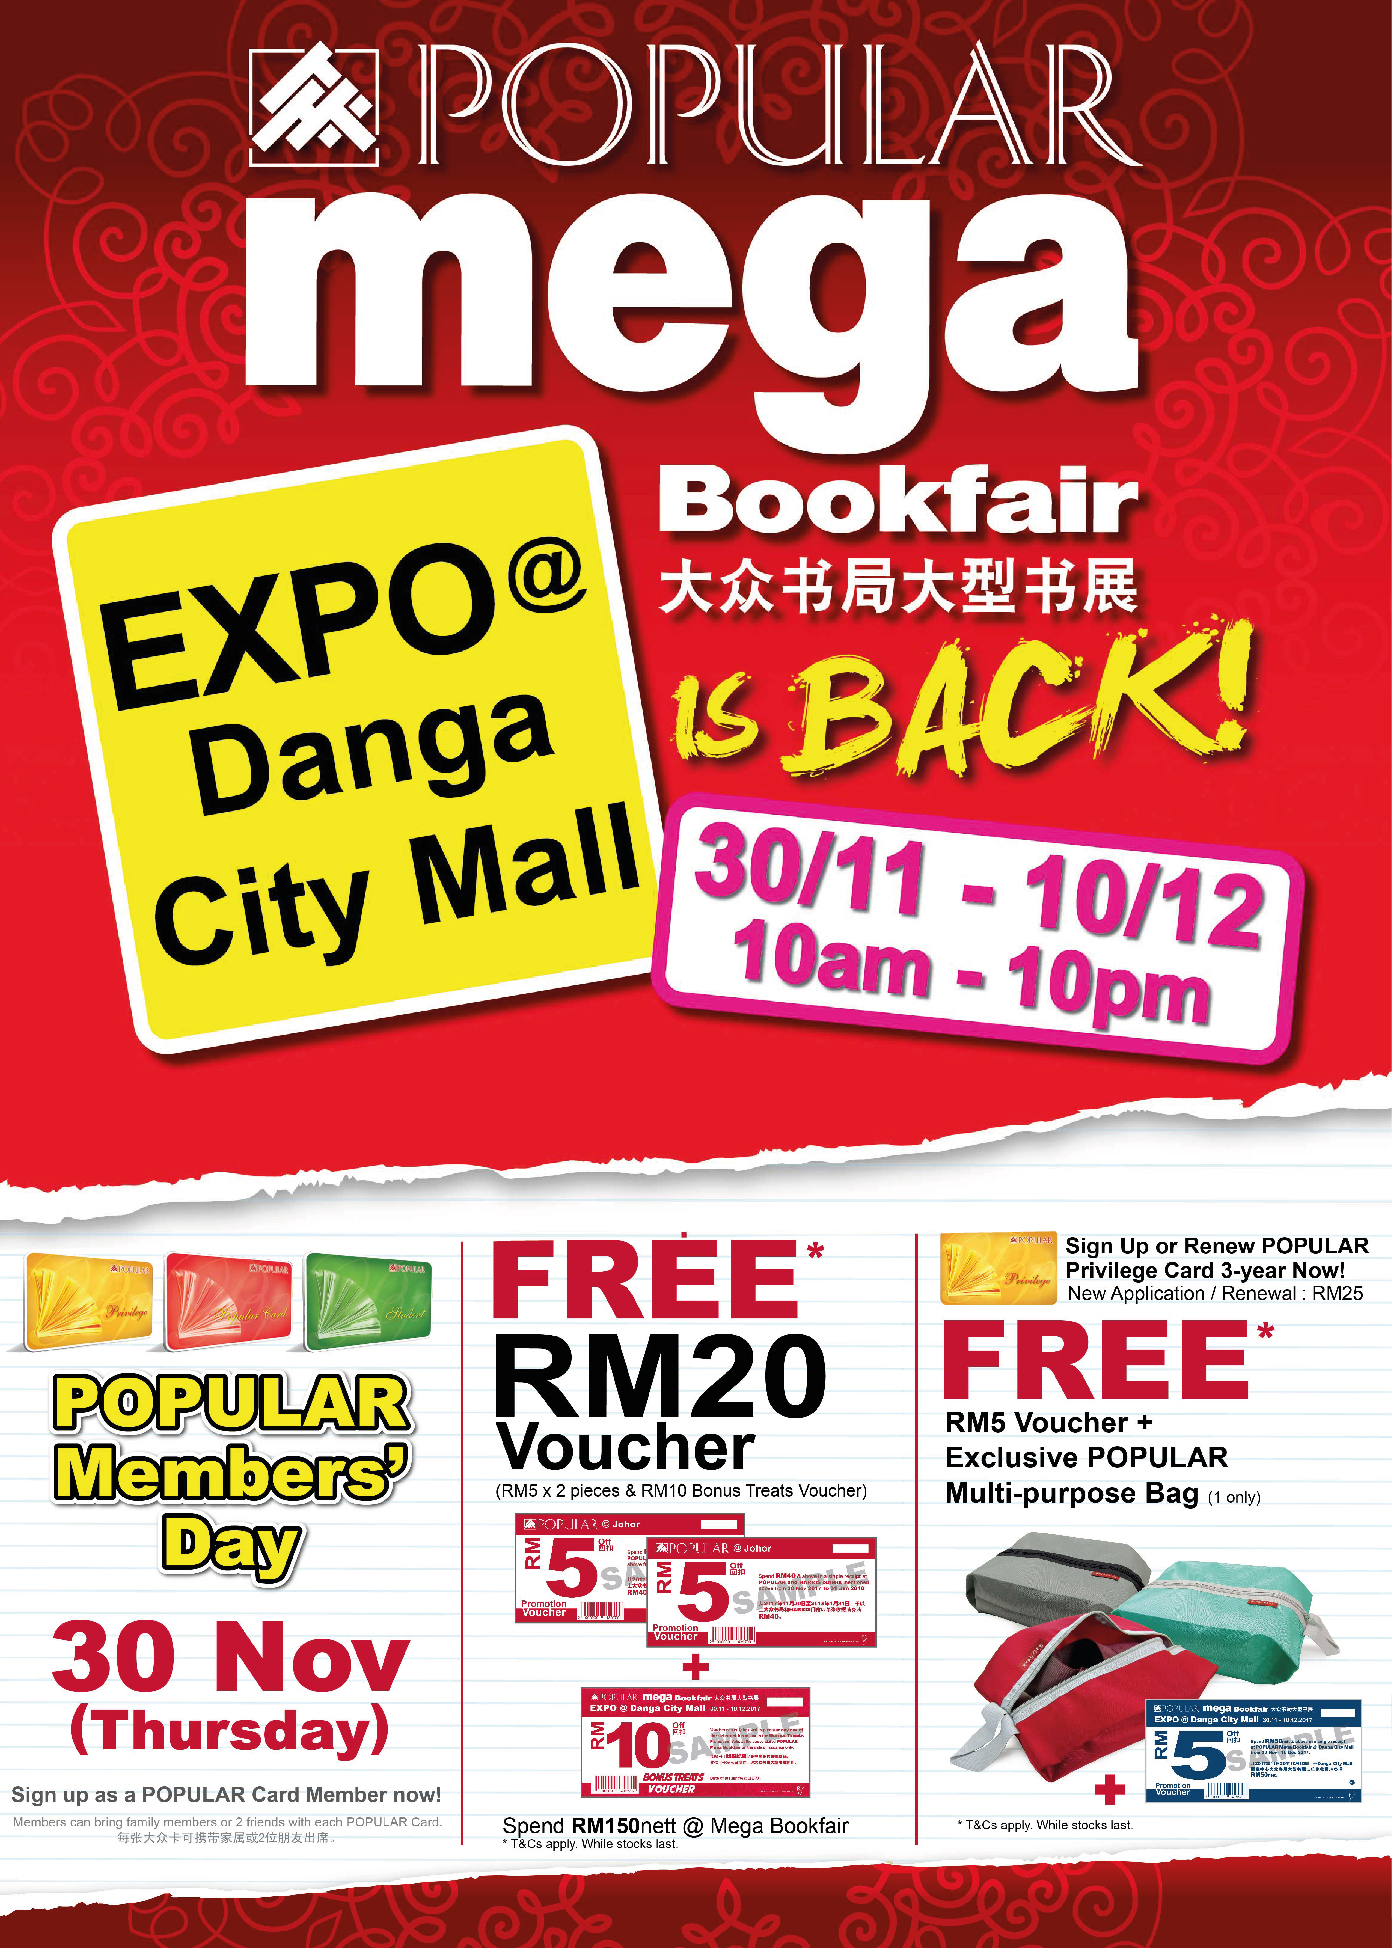 Popular Mega Bookfair @Danga City Mall, Johor Bahru